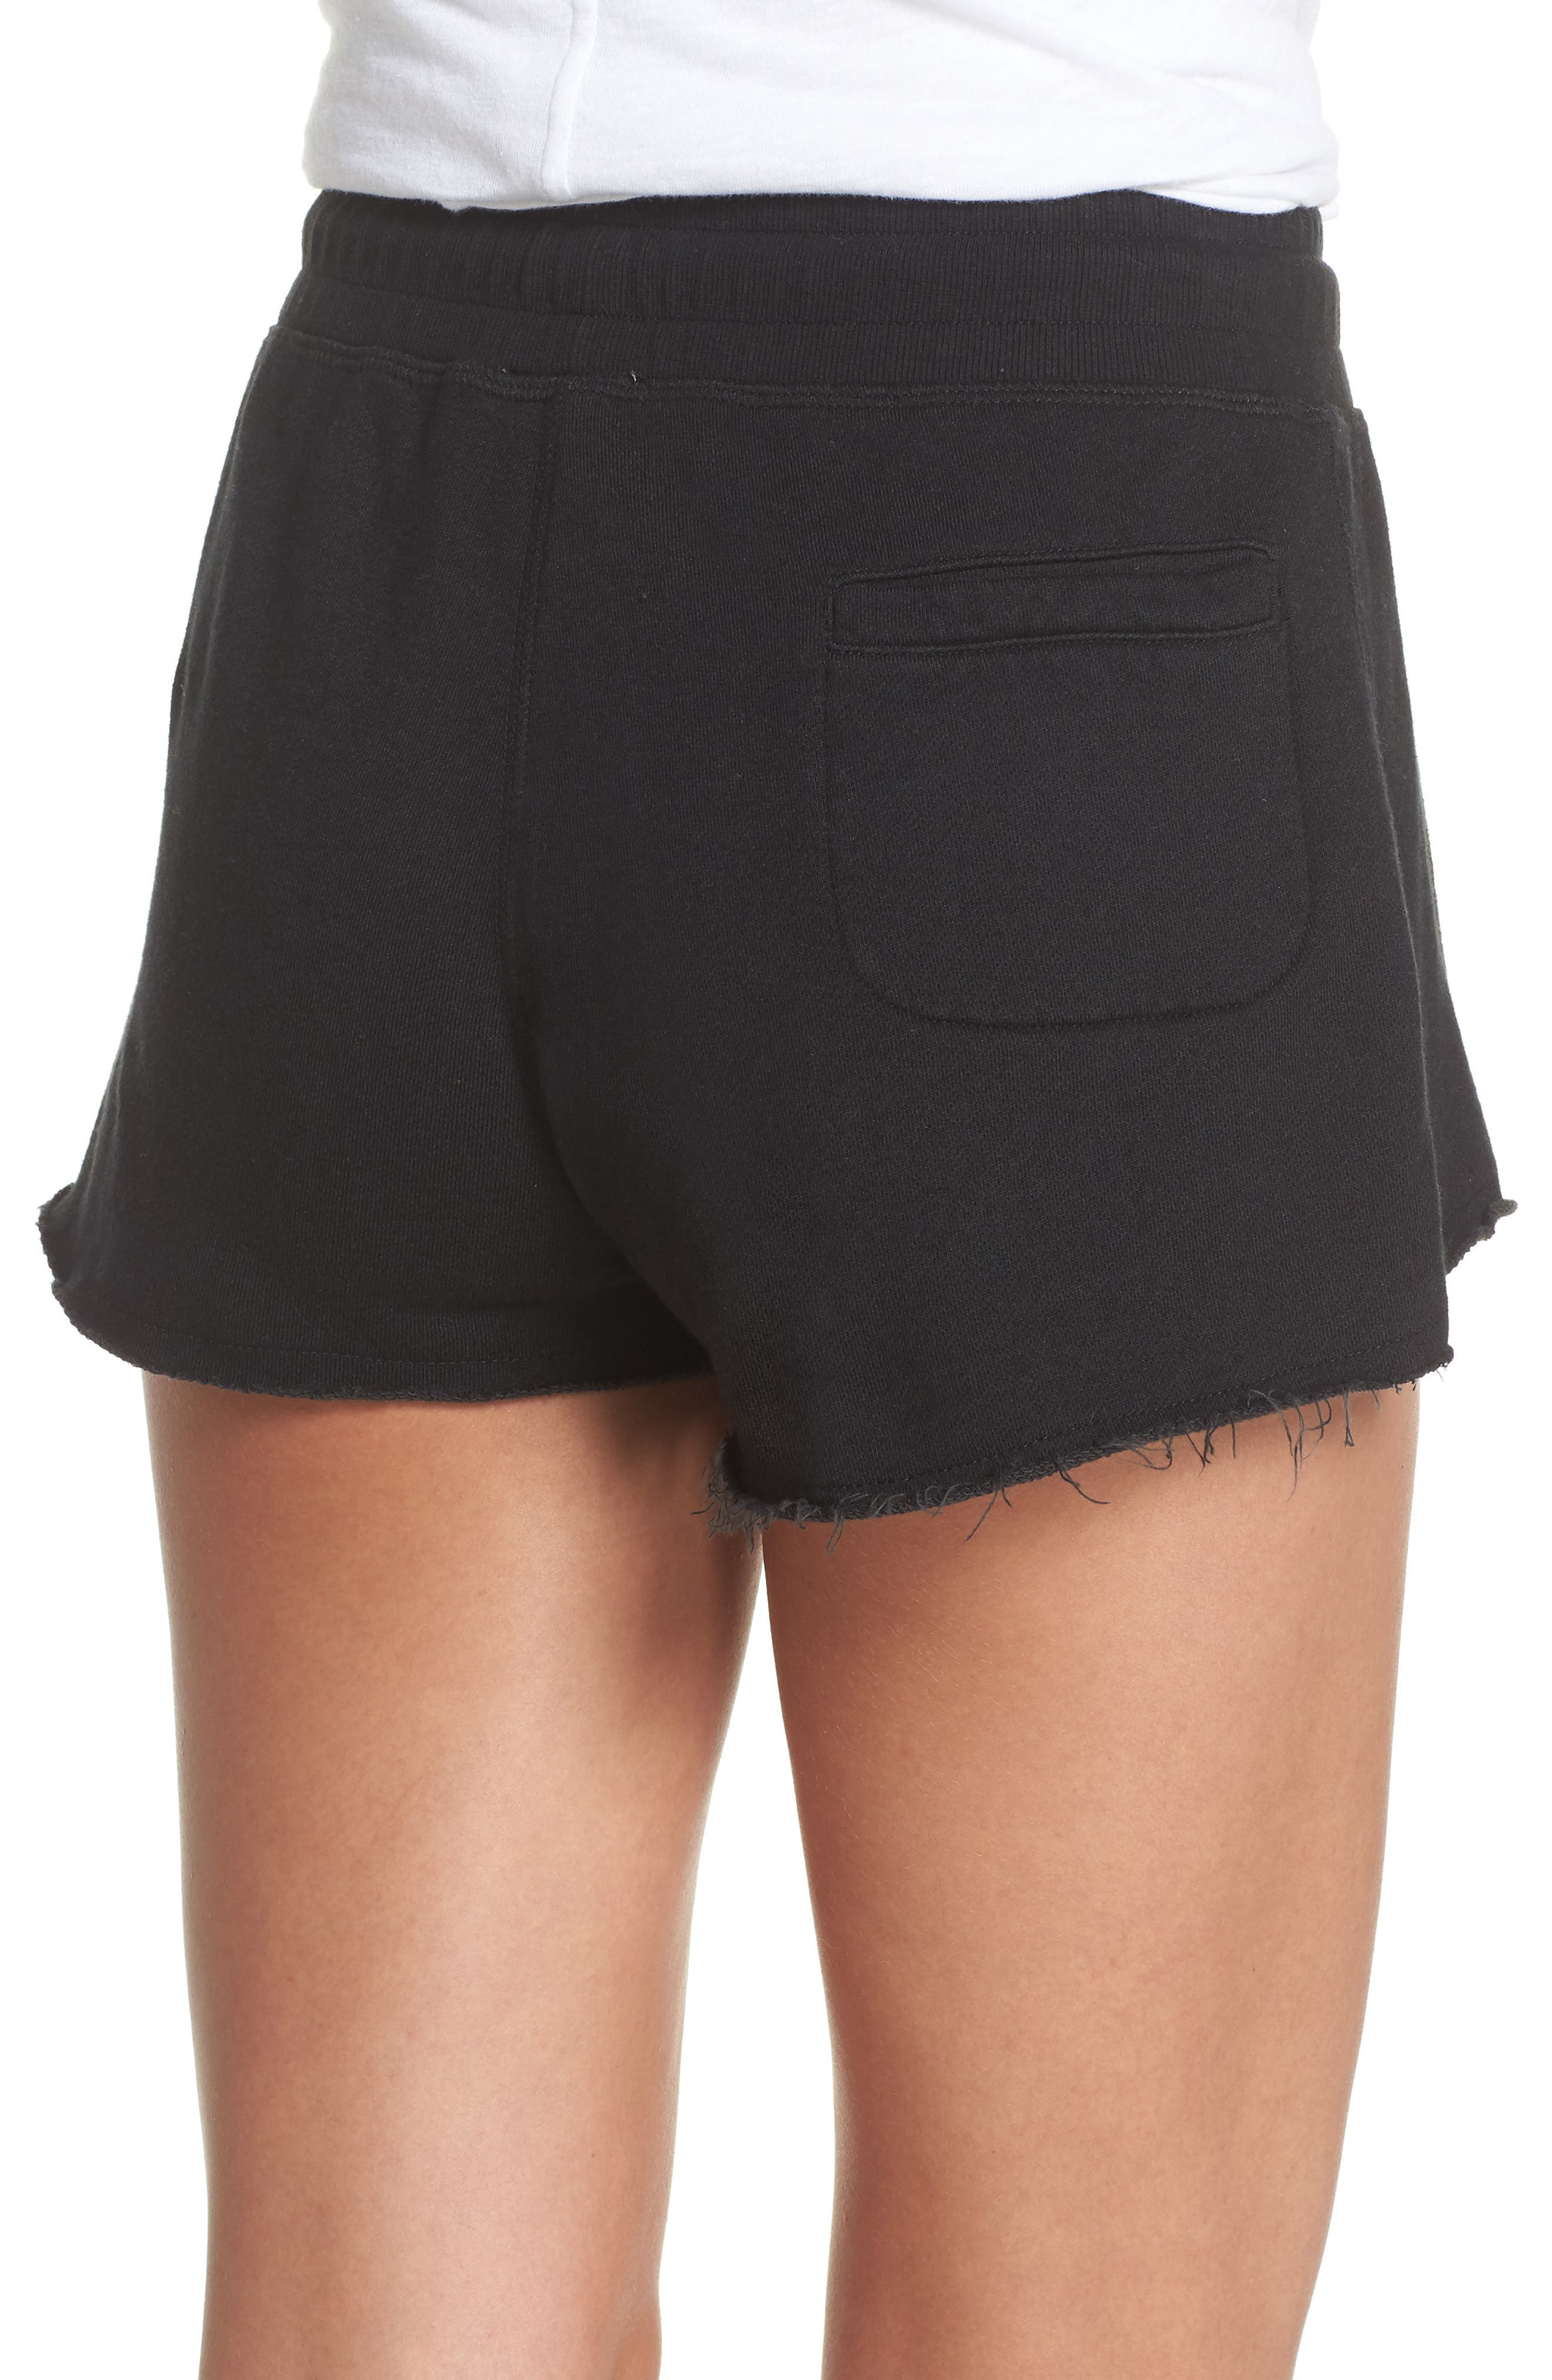 French Terry Sleep Shorts,                             Alternate thumbnail 2, color,                             Faded Black